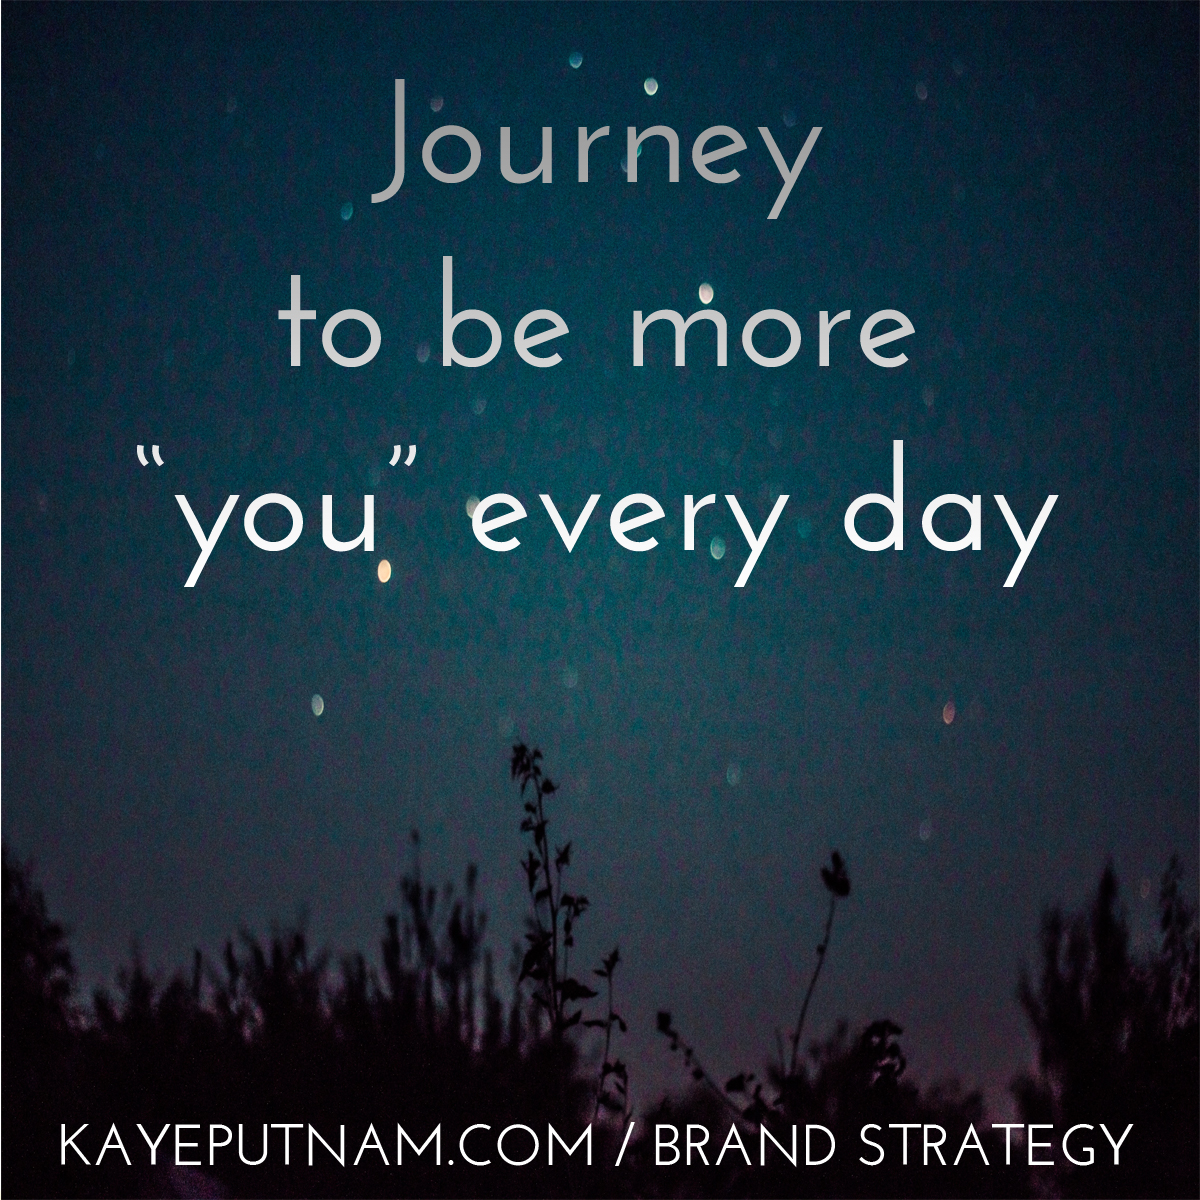 Journey to be more you every day. #InDemandBrand